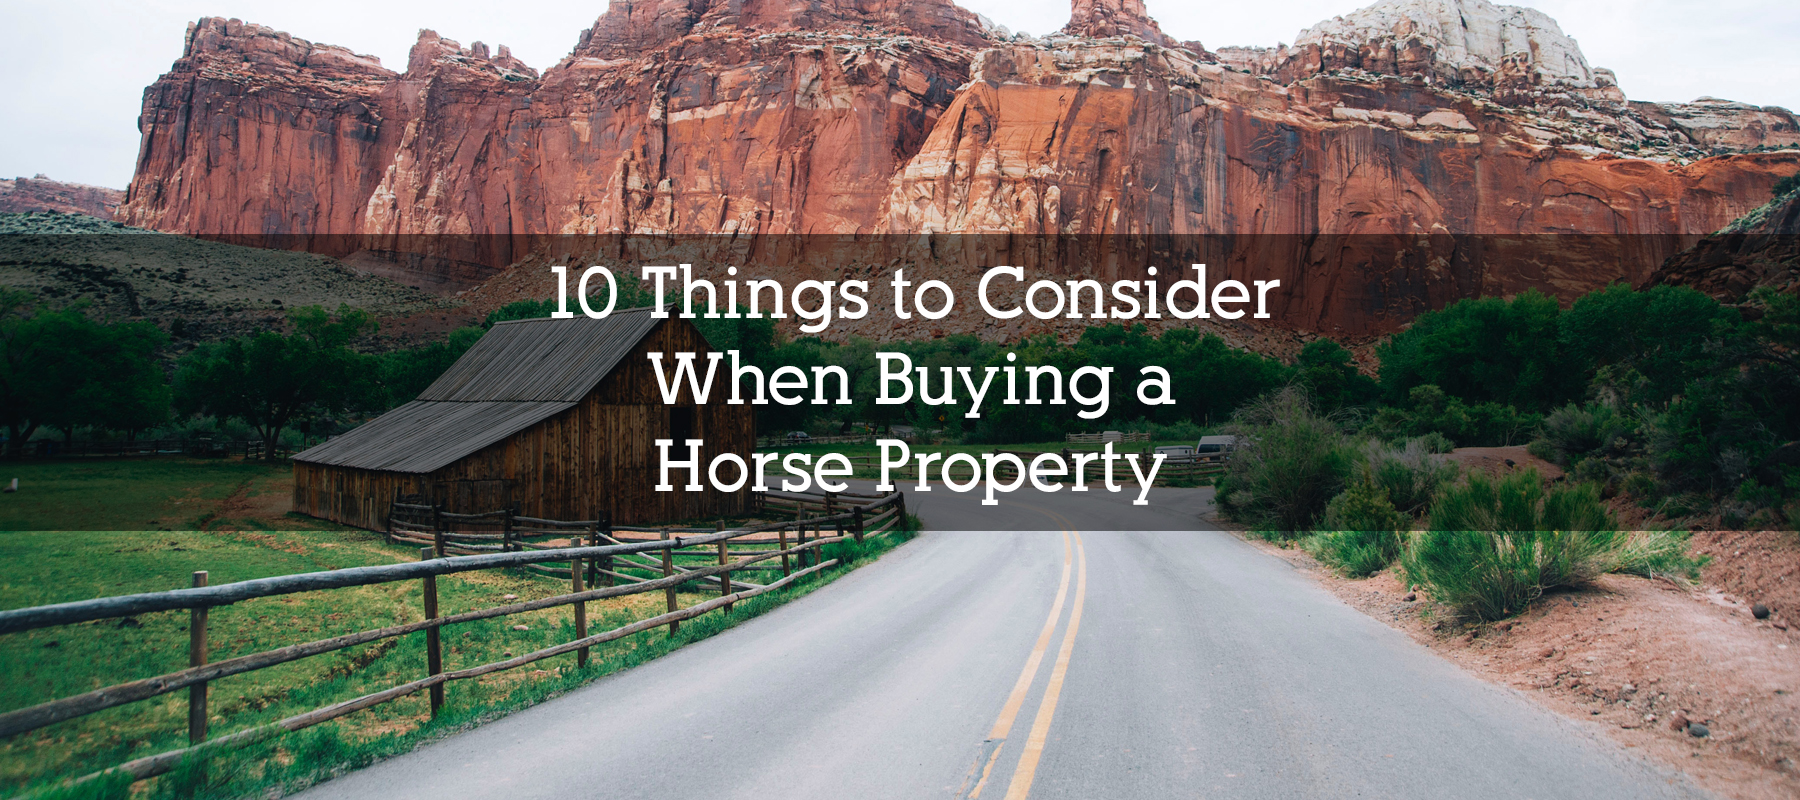 10 THINGS TO CONSIDER WHEN BUYING A HORSE PROPERTY IN COLORADO